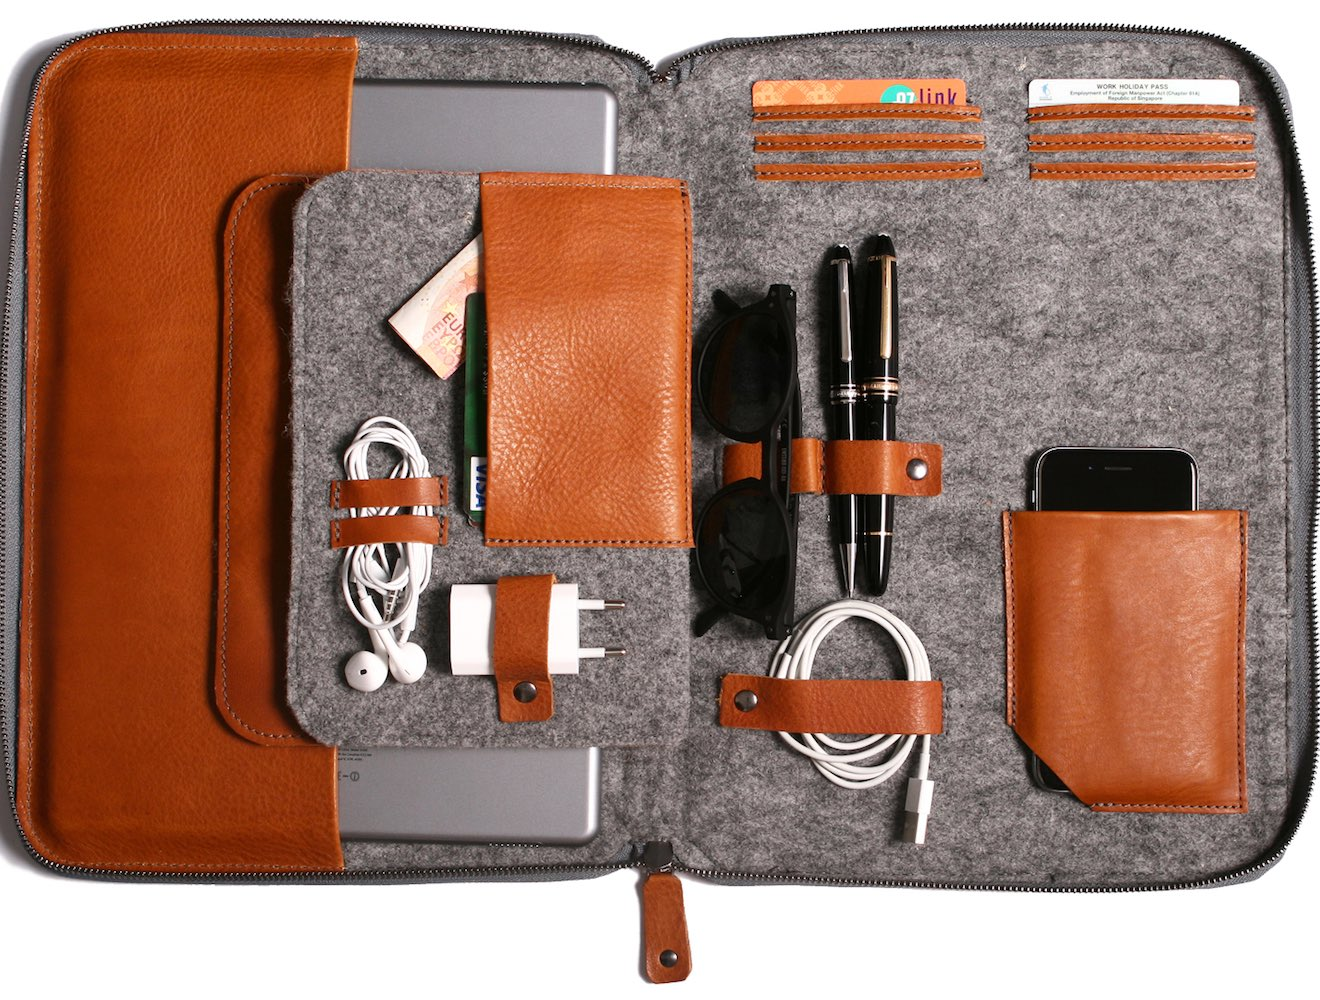 BYRON – The First 2 in 1 Leather Carryall